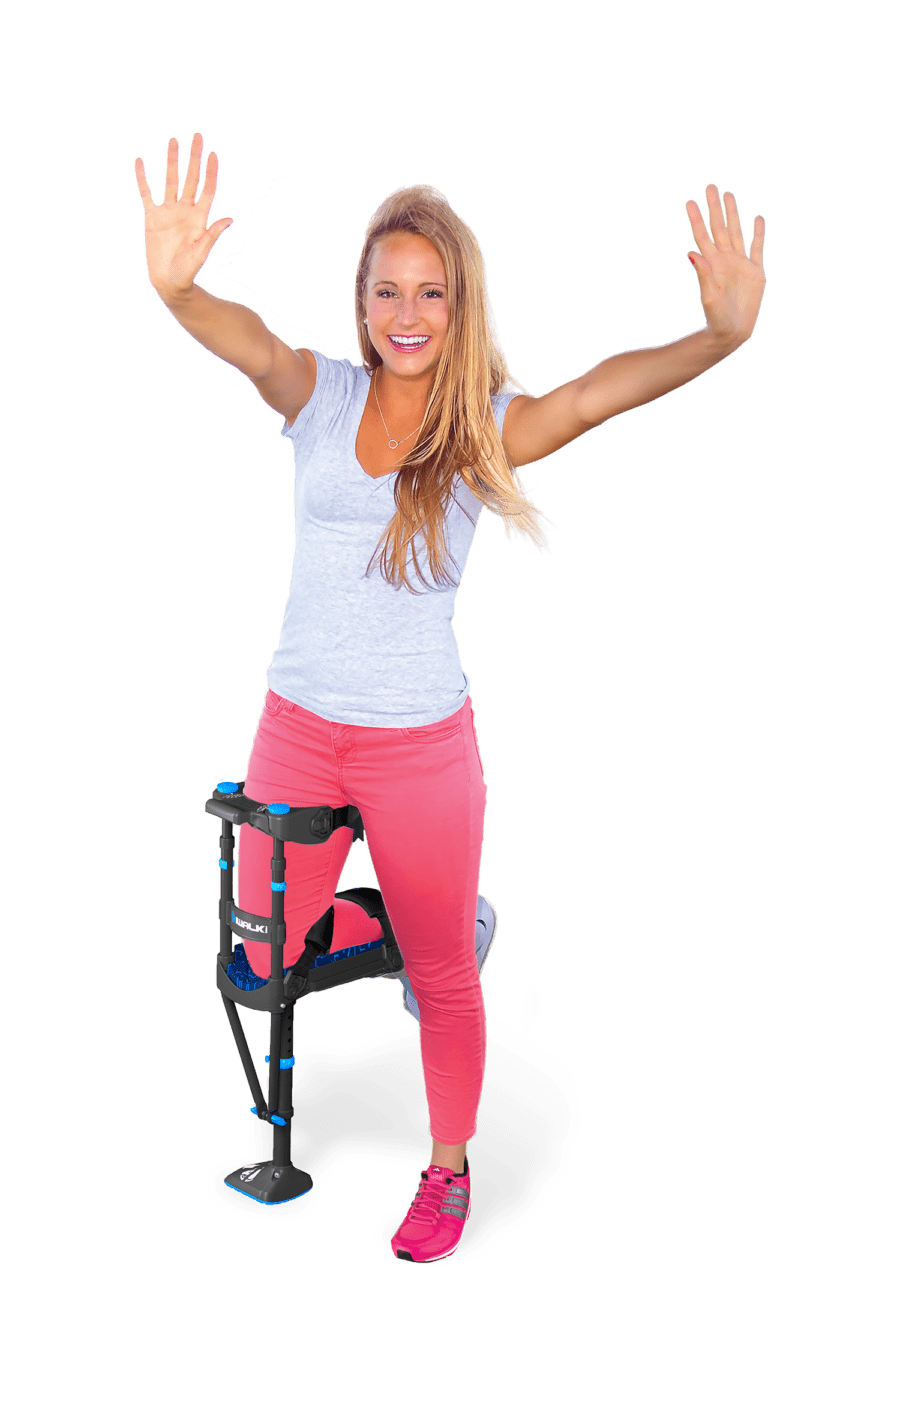 female using iwalk3 hands free crutch with an aircast boot